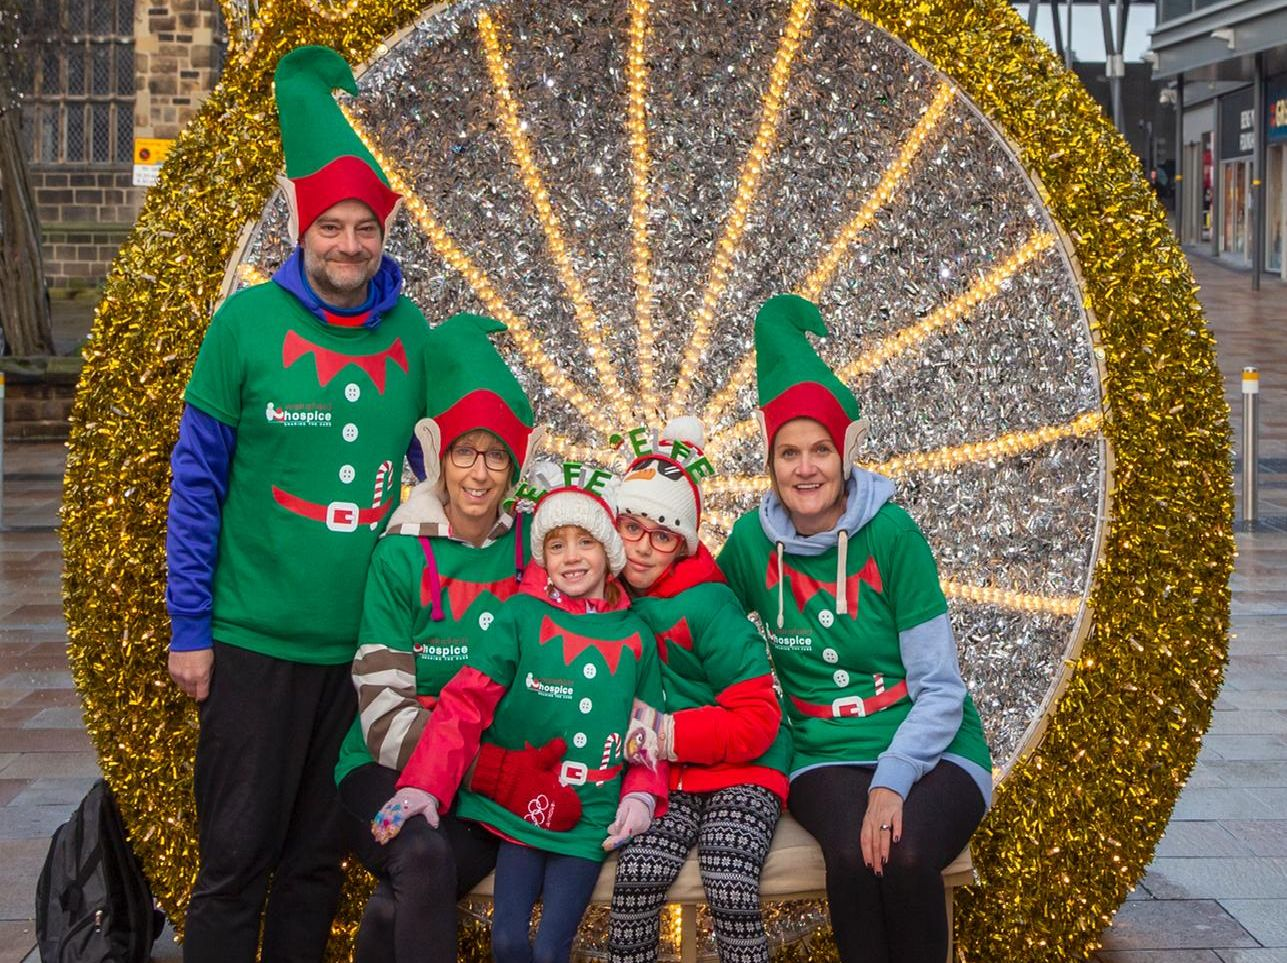 A family of elves smile for our photographer